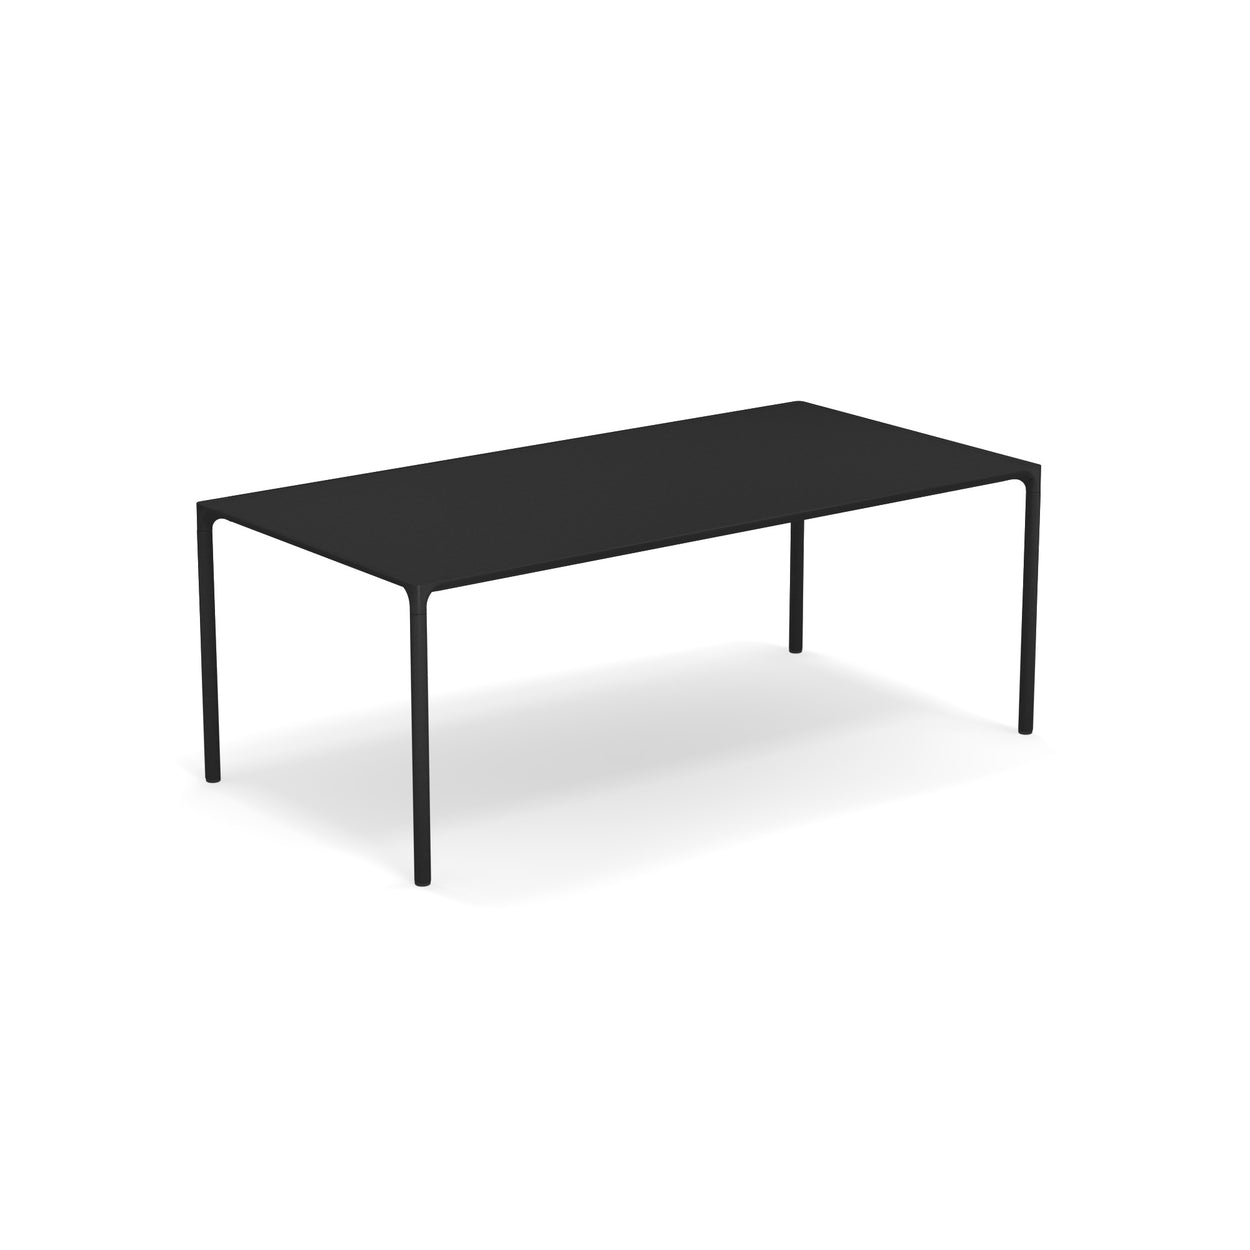 EMU Terramare 6-8 Seater Dining Table